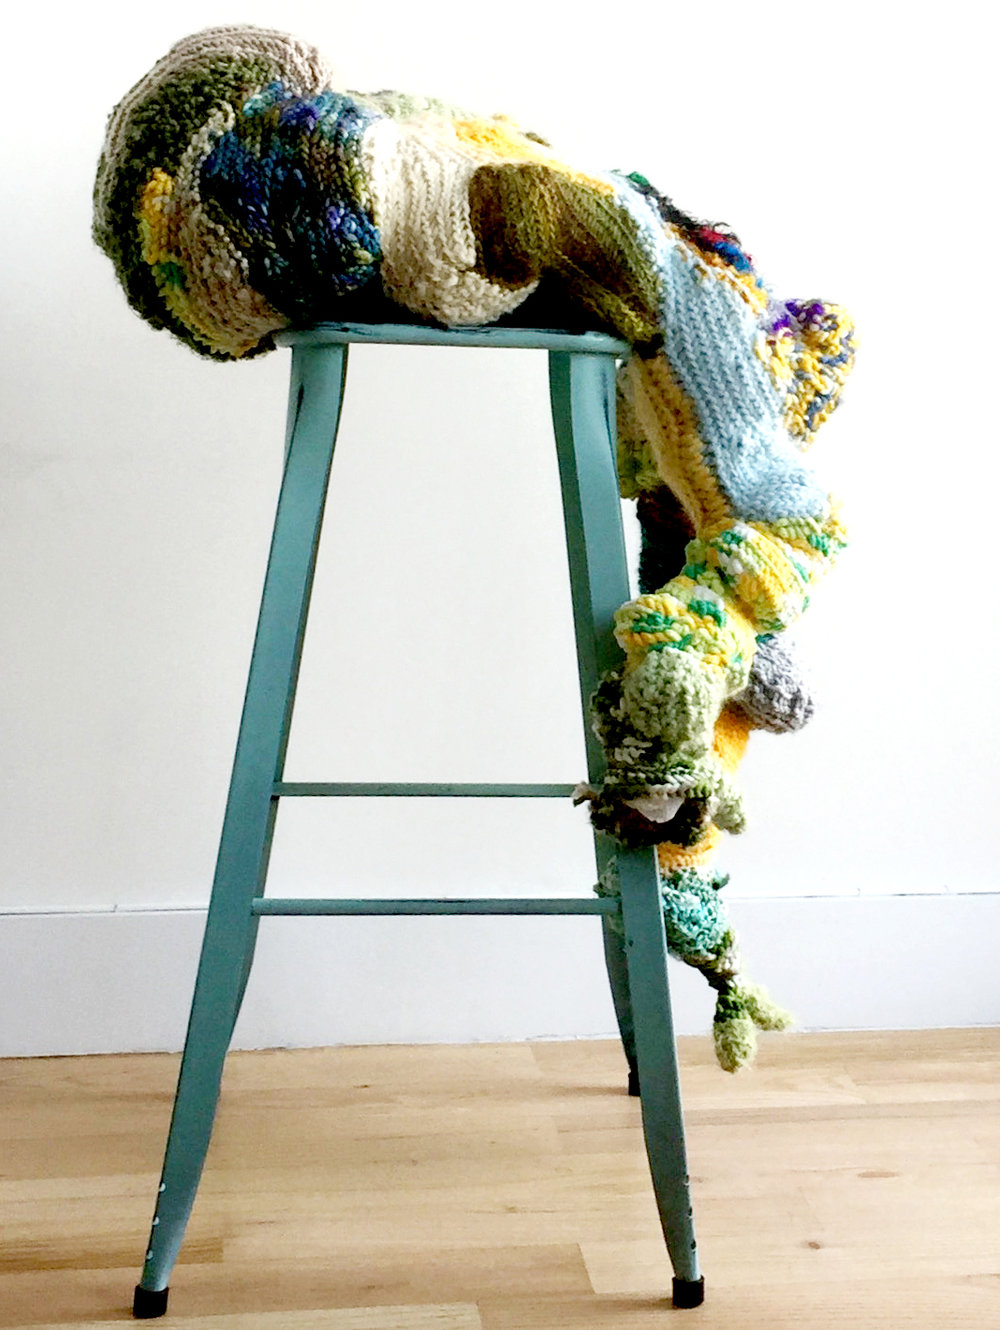 a seat at the table, 39 x 26 x 21 inches  Yarn, upcycled grocery bags (stuffing), stool.    Continuing to abstract the feminine body as ceremonial object/fertility sculpture, this full figure has taken her seat at the table.  See more  here .